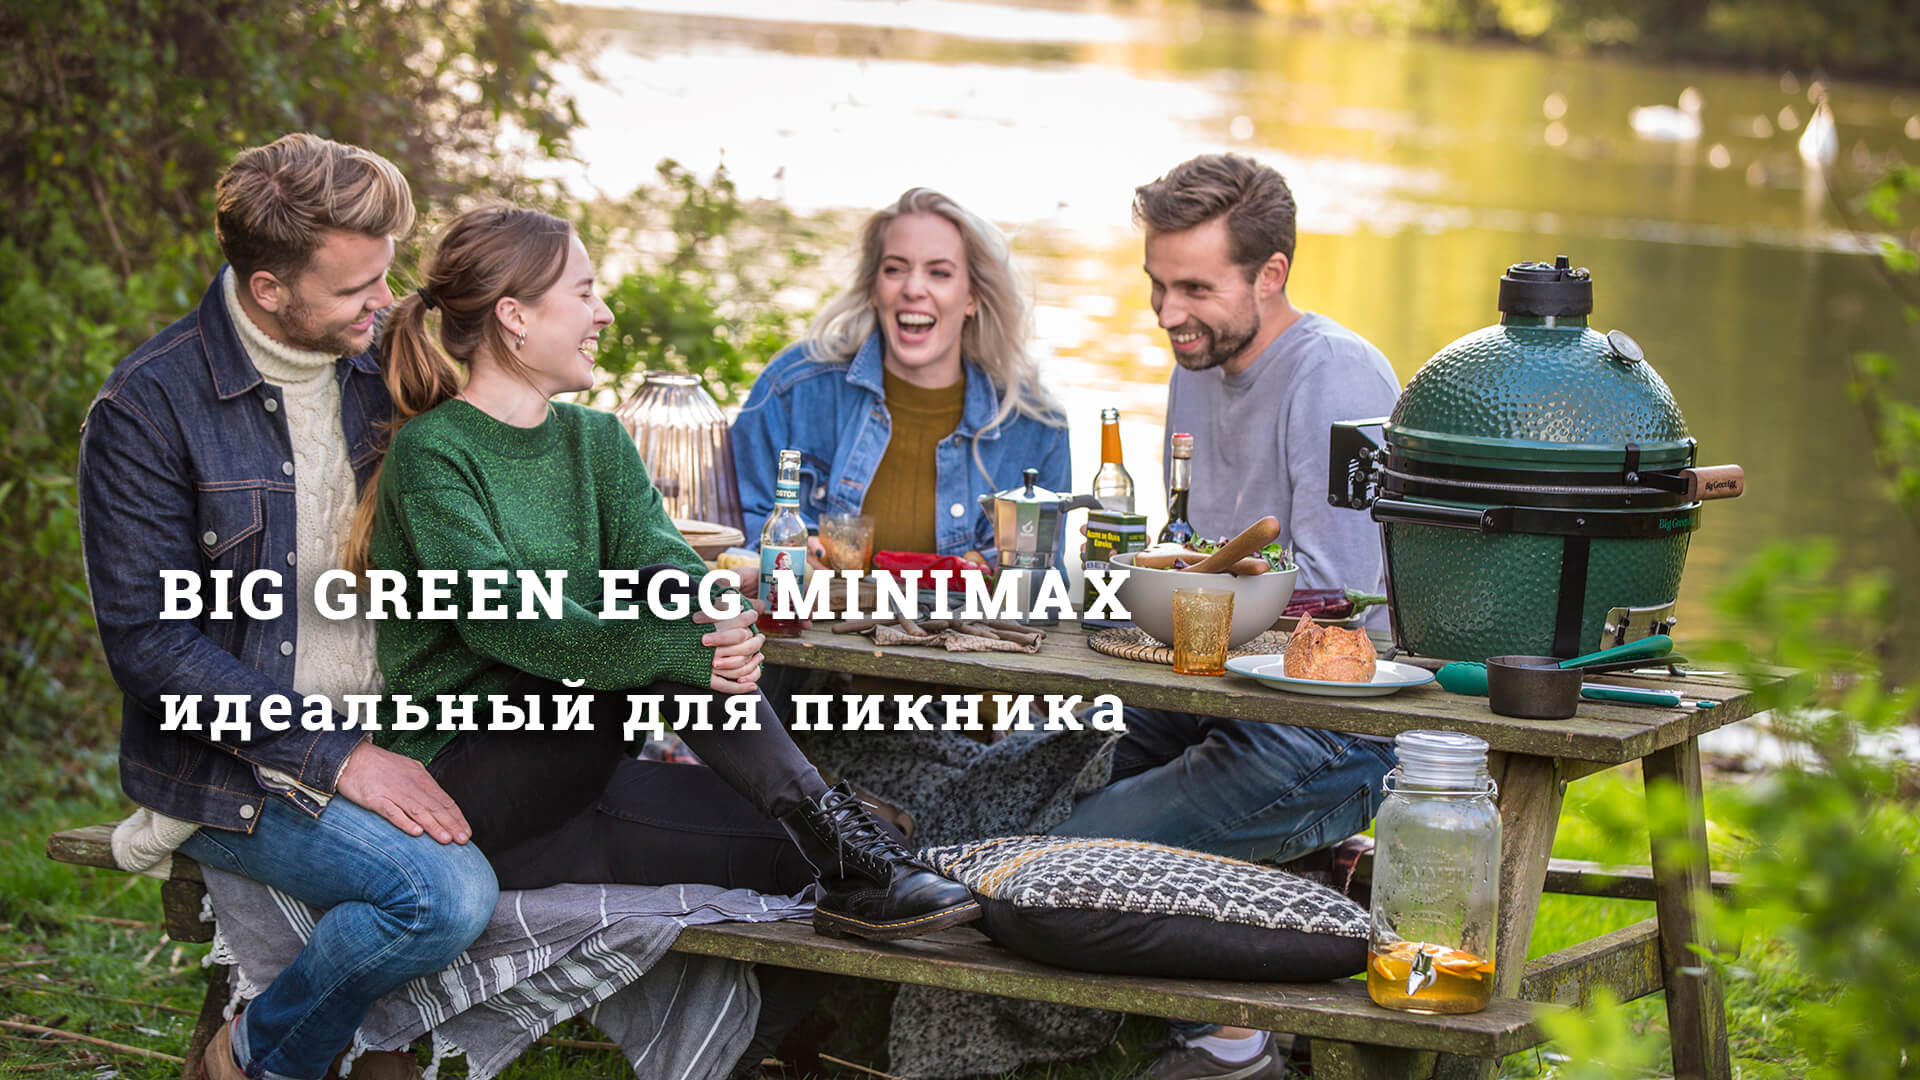 biggreenegg_minimax